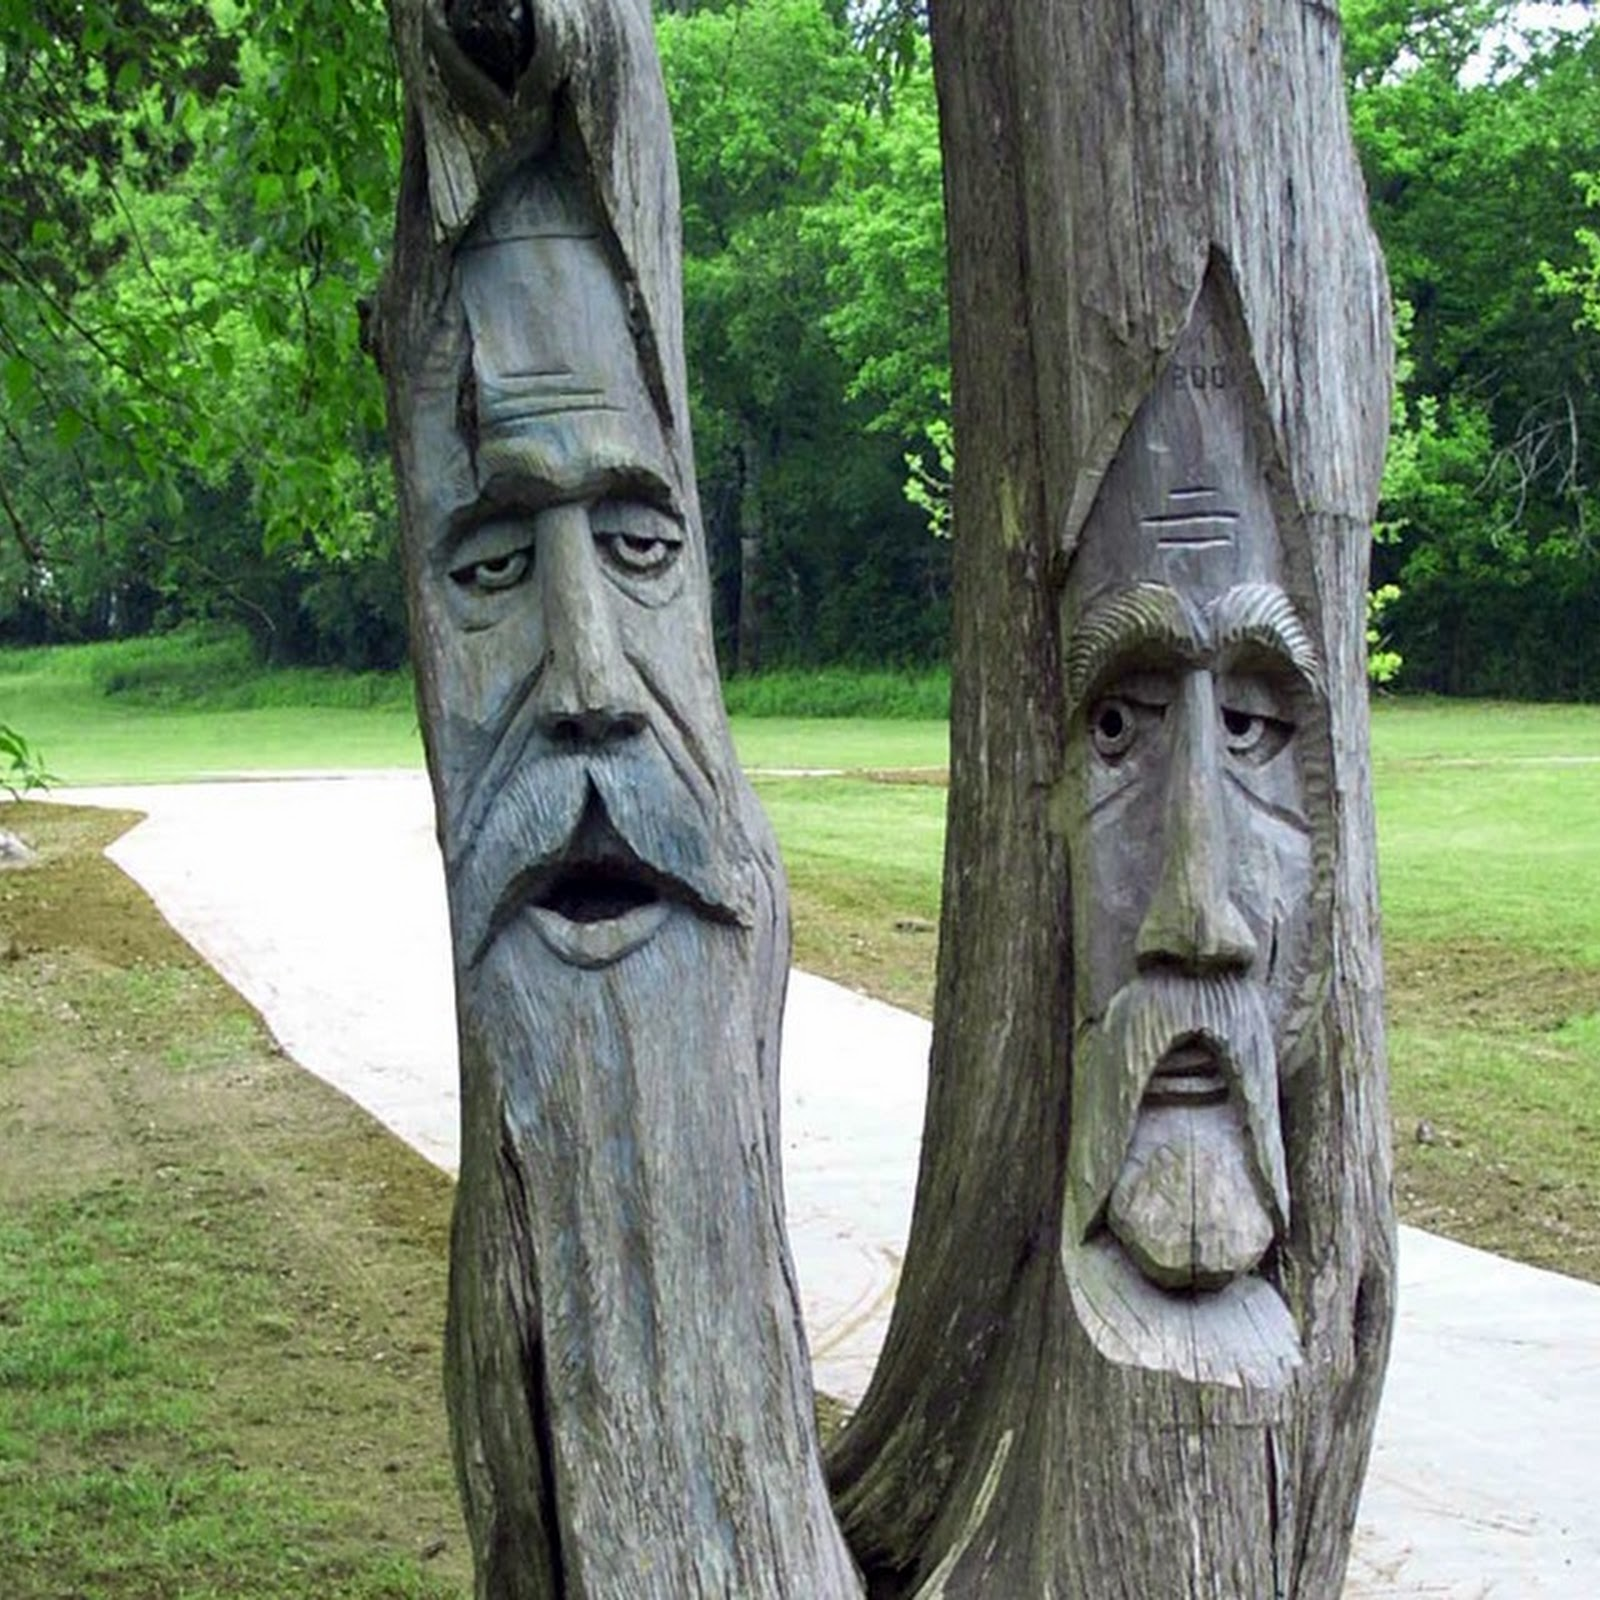 Carving Dead Trees Into Public Art